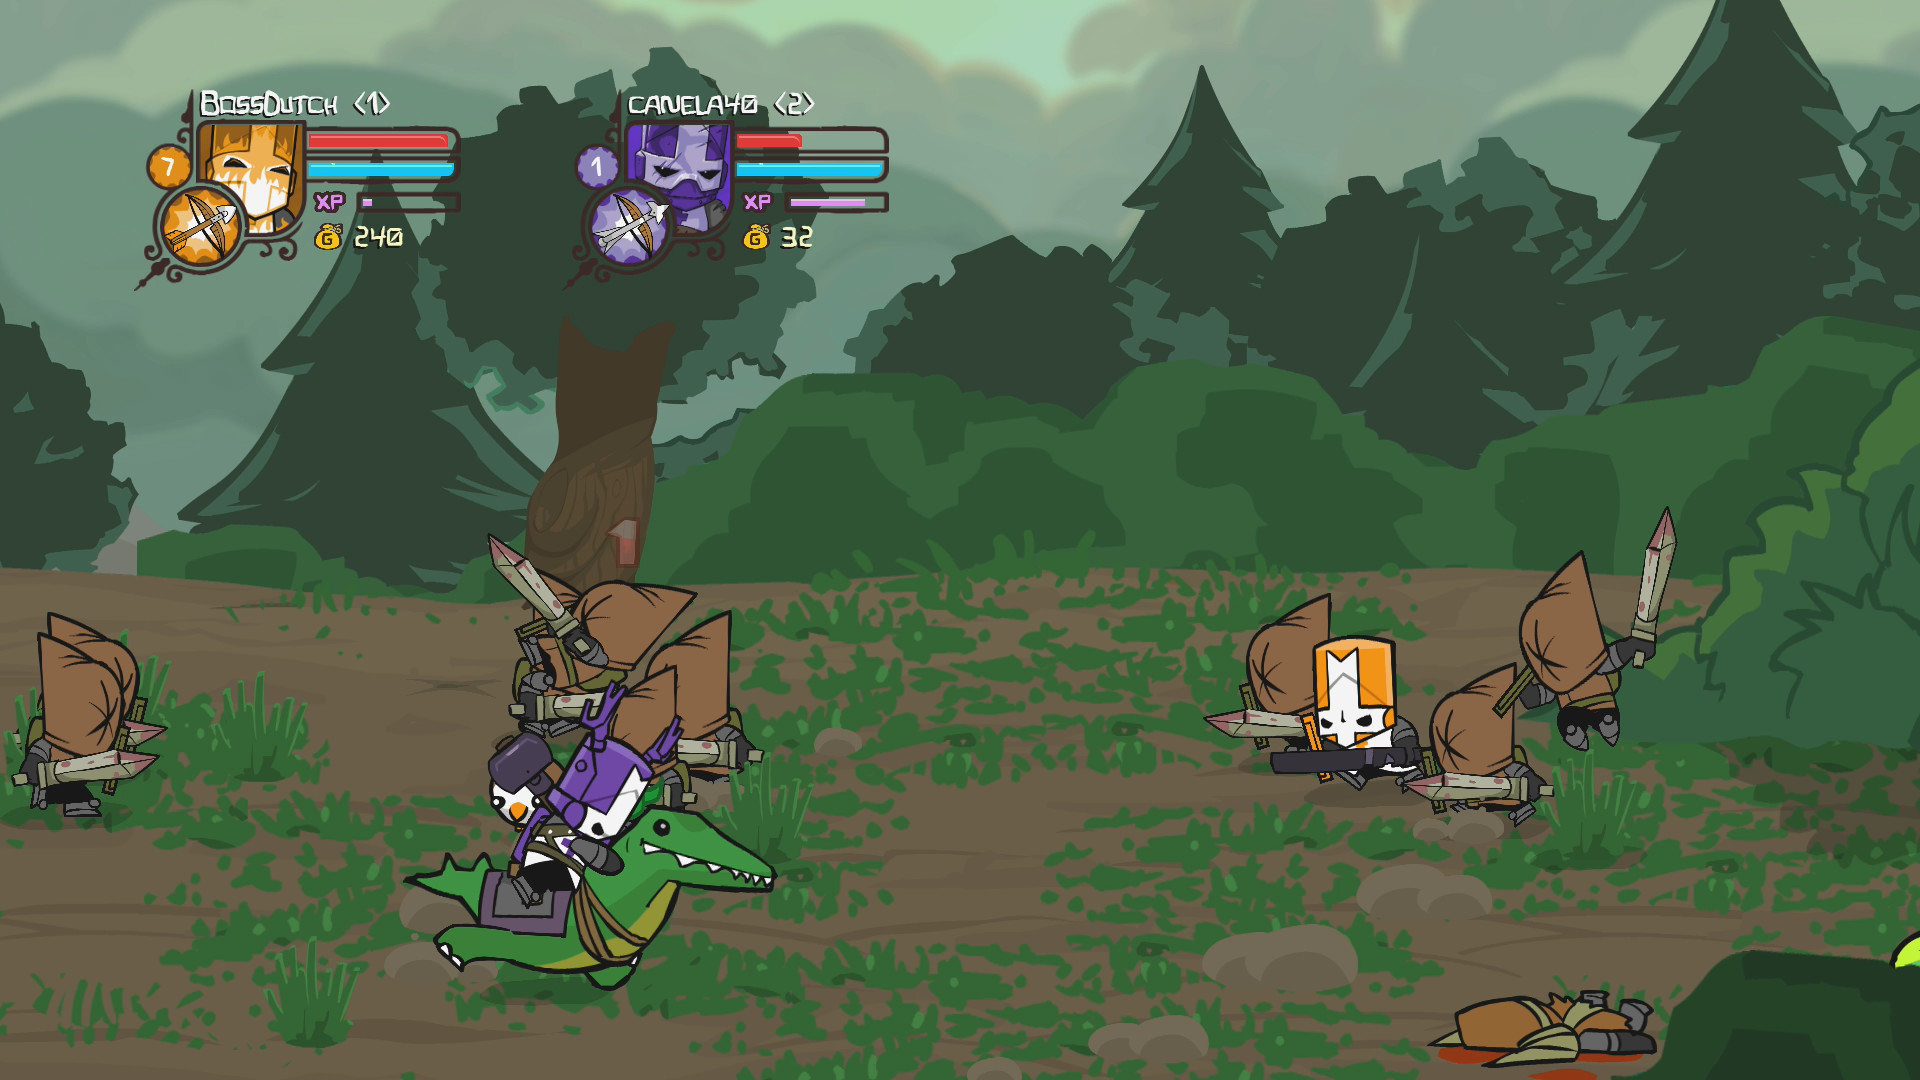 The original 'Castle Crashers' is very cartoonish, with bright colors and  sharp edges that give it a glossy, colored pencil kind of look.